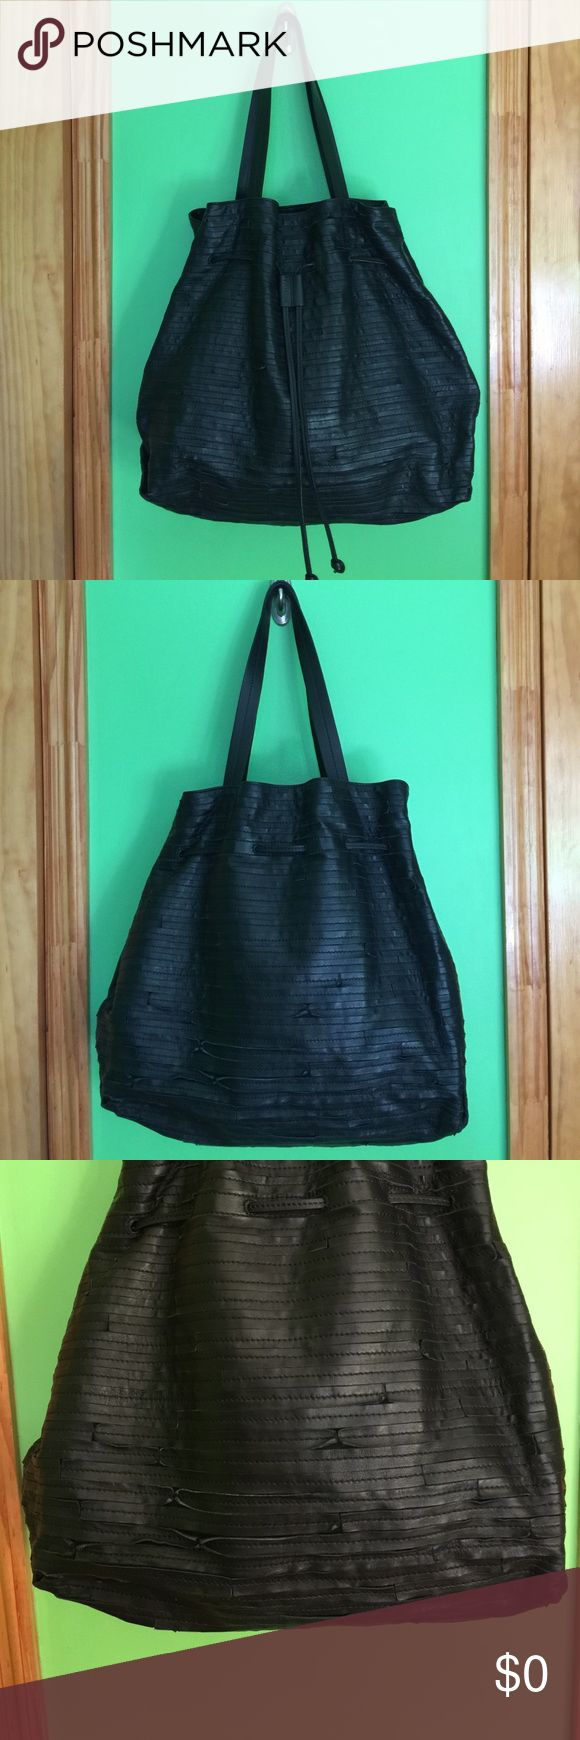 Whistles Caracas Duffle Bag Used with care, Whistles Caracas Duffle Bag, purchased at Bloomingdale's. Overall, the bag is in excellent condition, some of the leather strips on the bag has curled up from wear.  One of the handles there are two small deep scratches (see photo).  Bag is very roomy, great for school, travel or to tote around.   Comes with dust bag.  Bag is 100% leather. Whistles Bags Totes